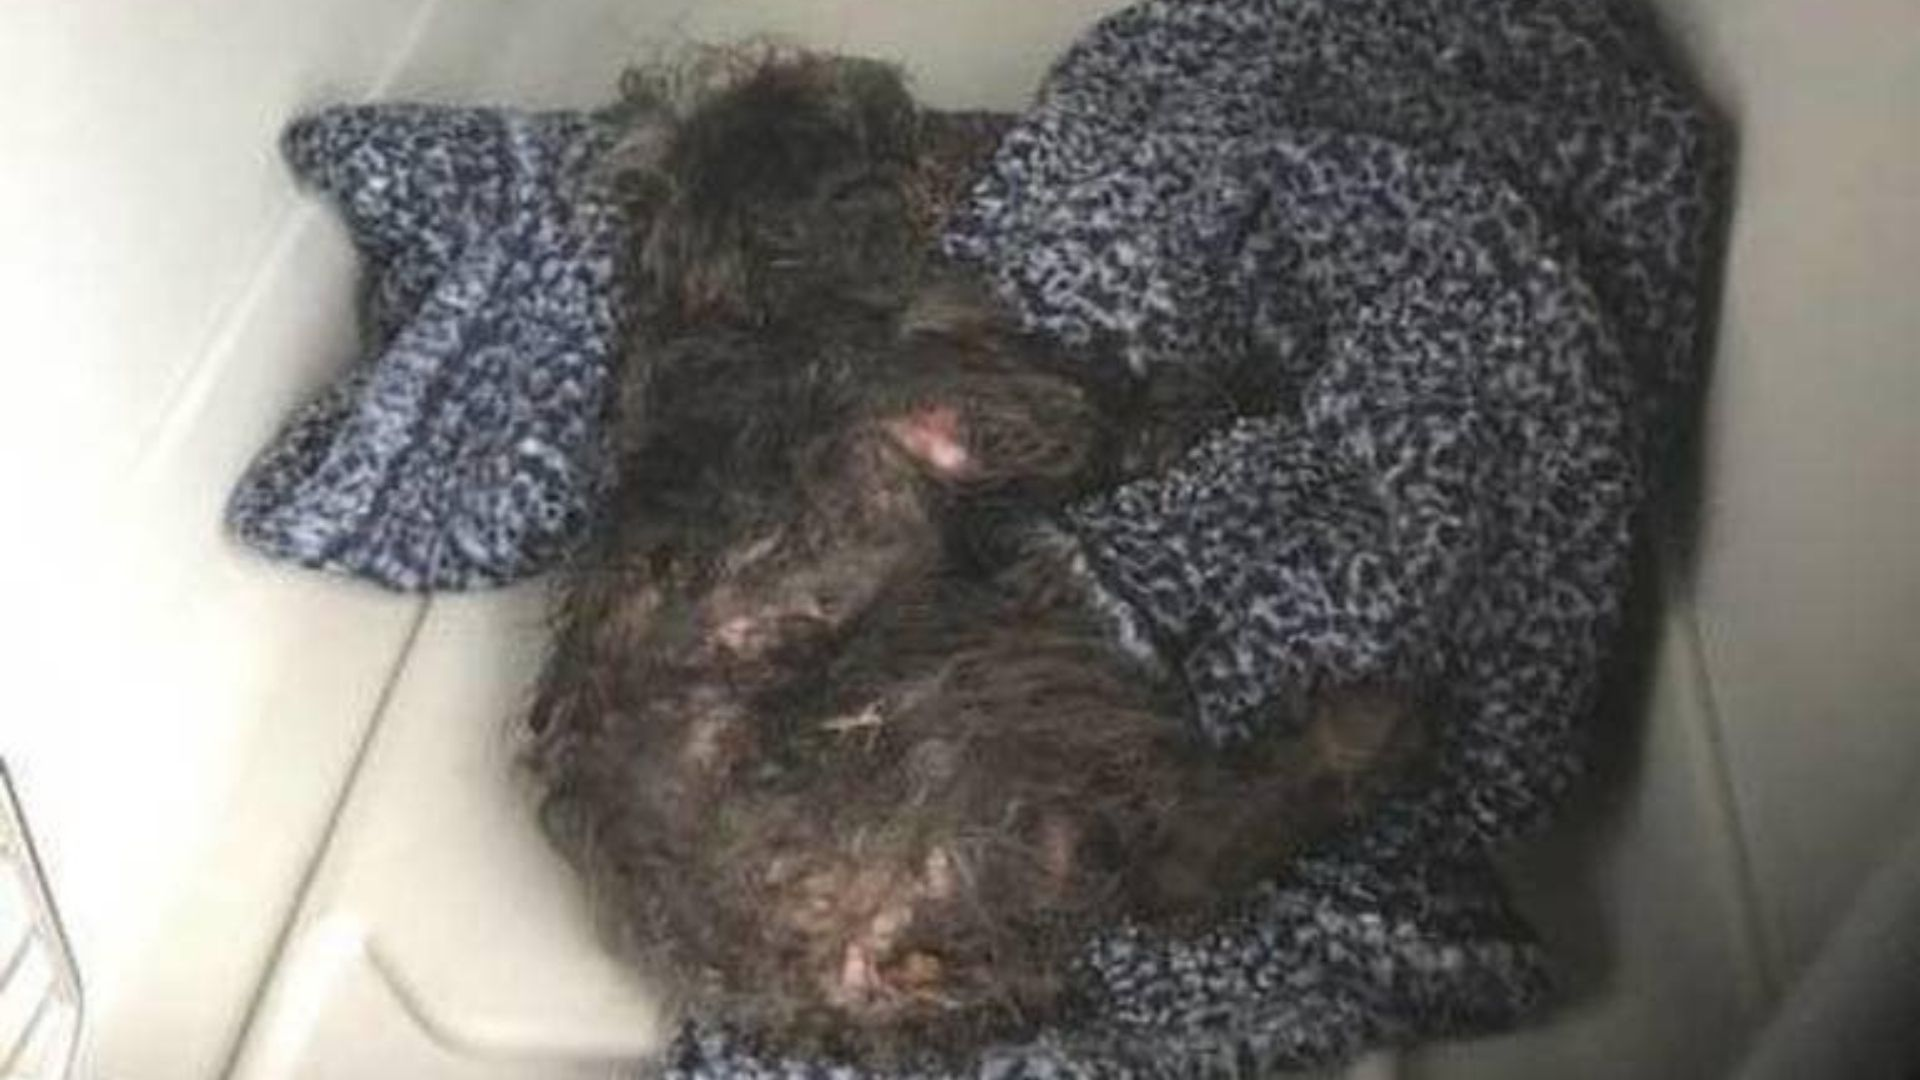 Dog named Bear thrown from car window in New Jersey